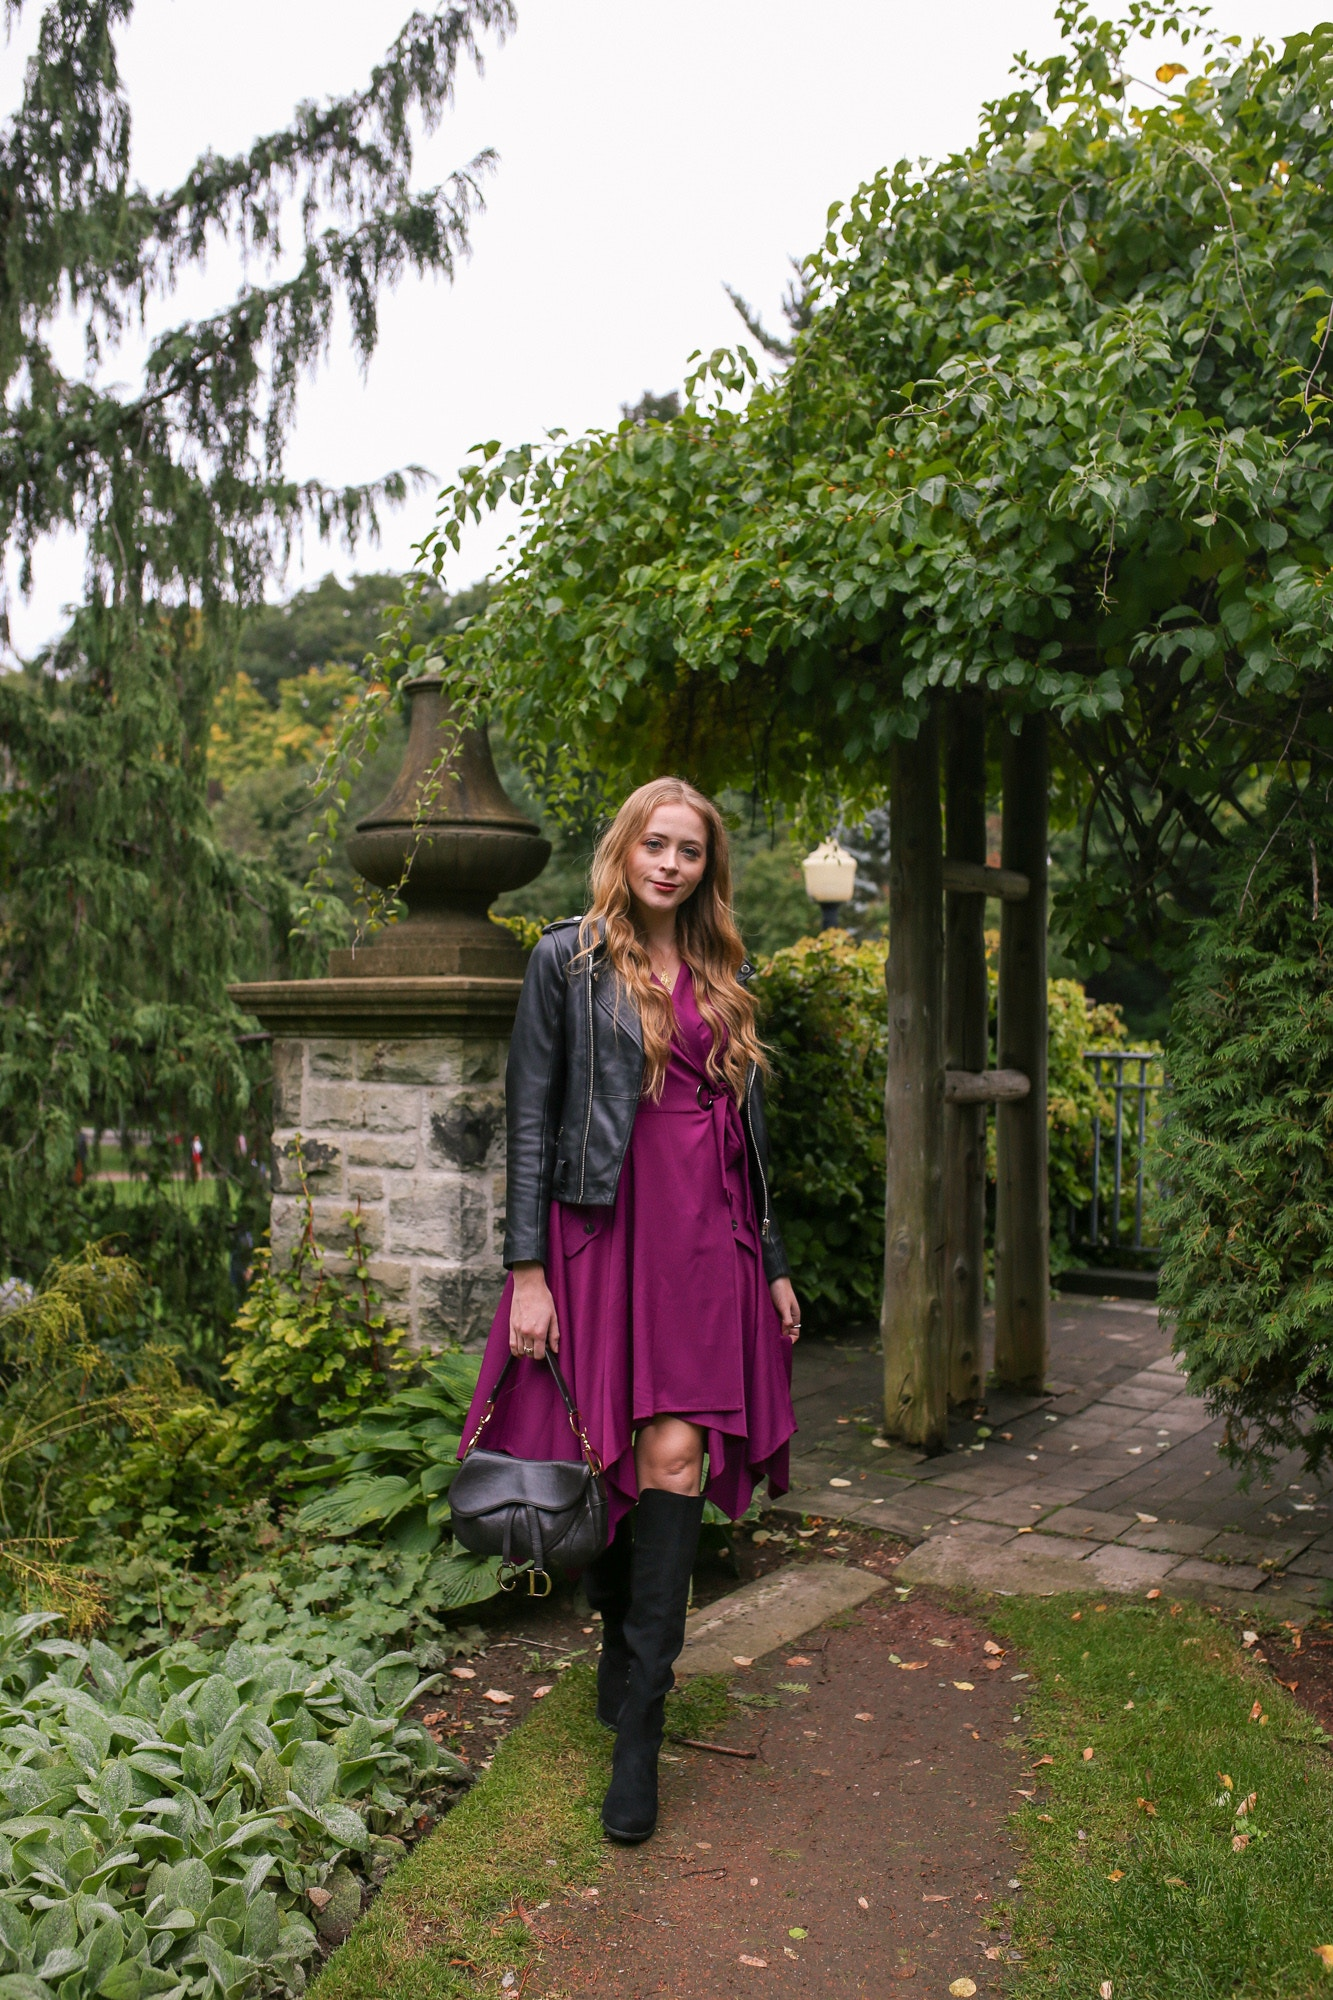 Leather Jacket and Chriselle Lim Wren Trench dress in berry purple